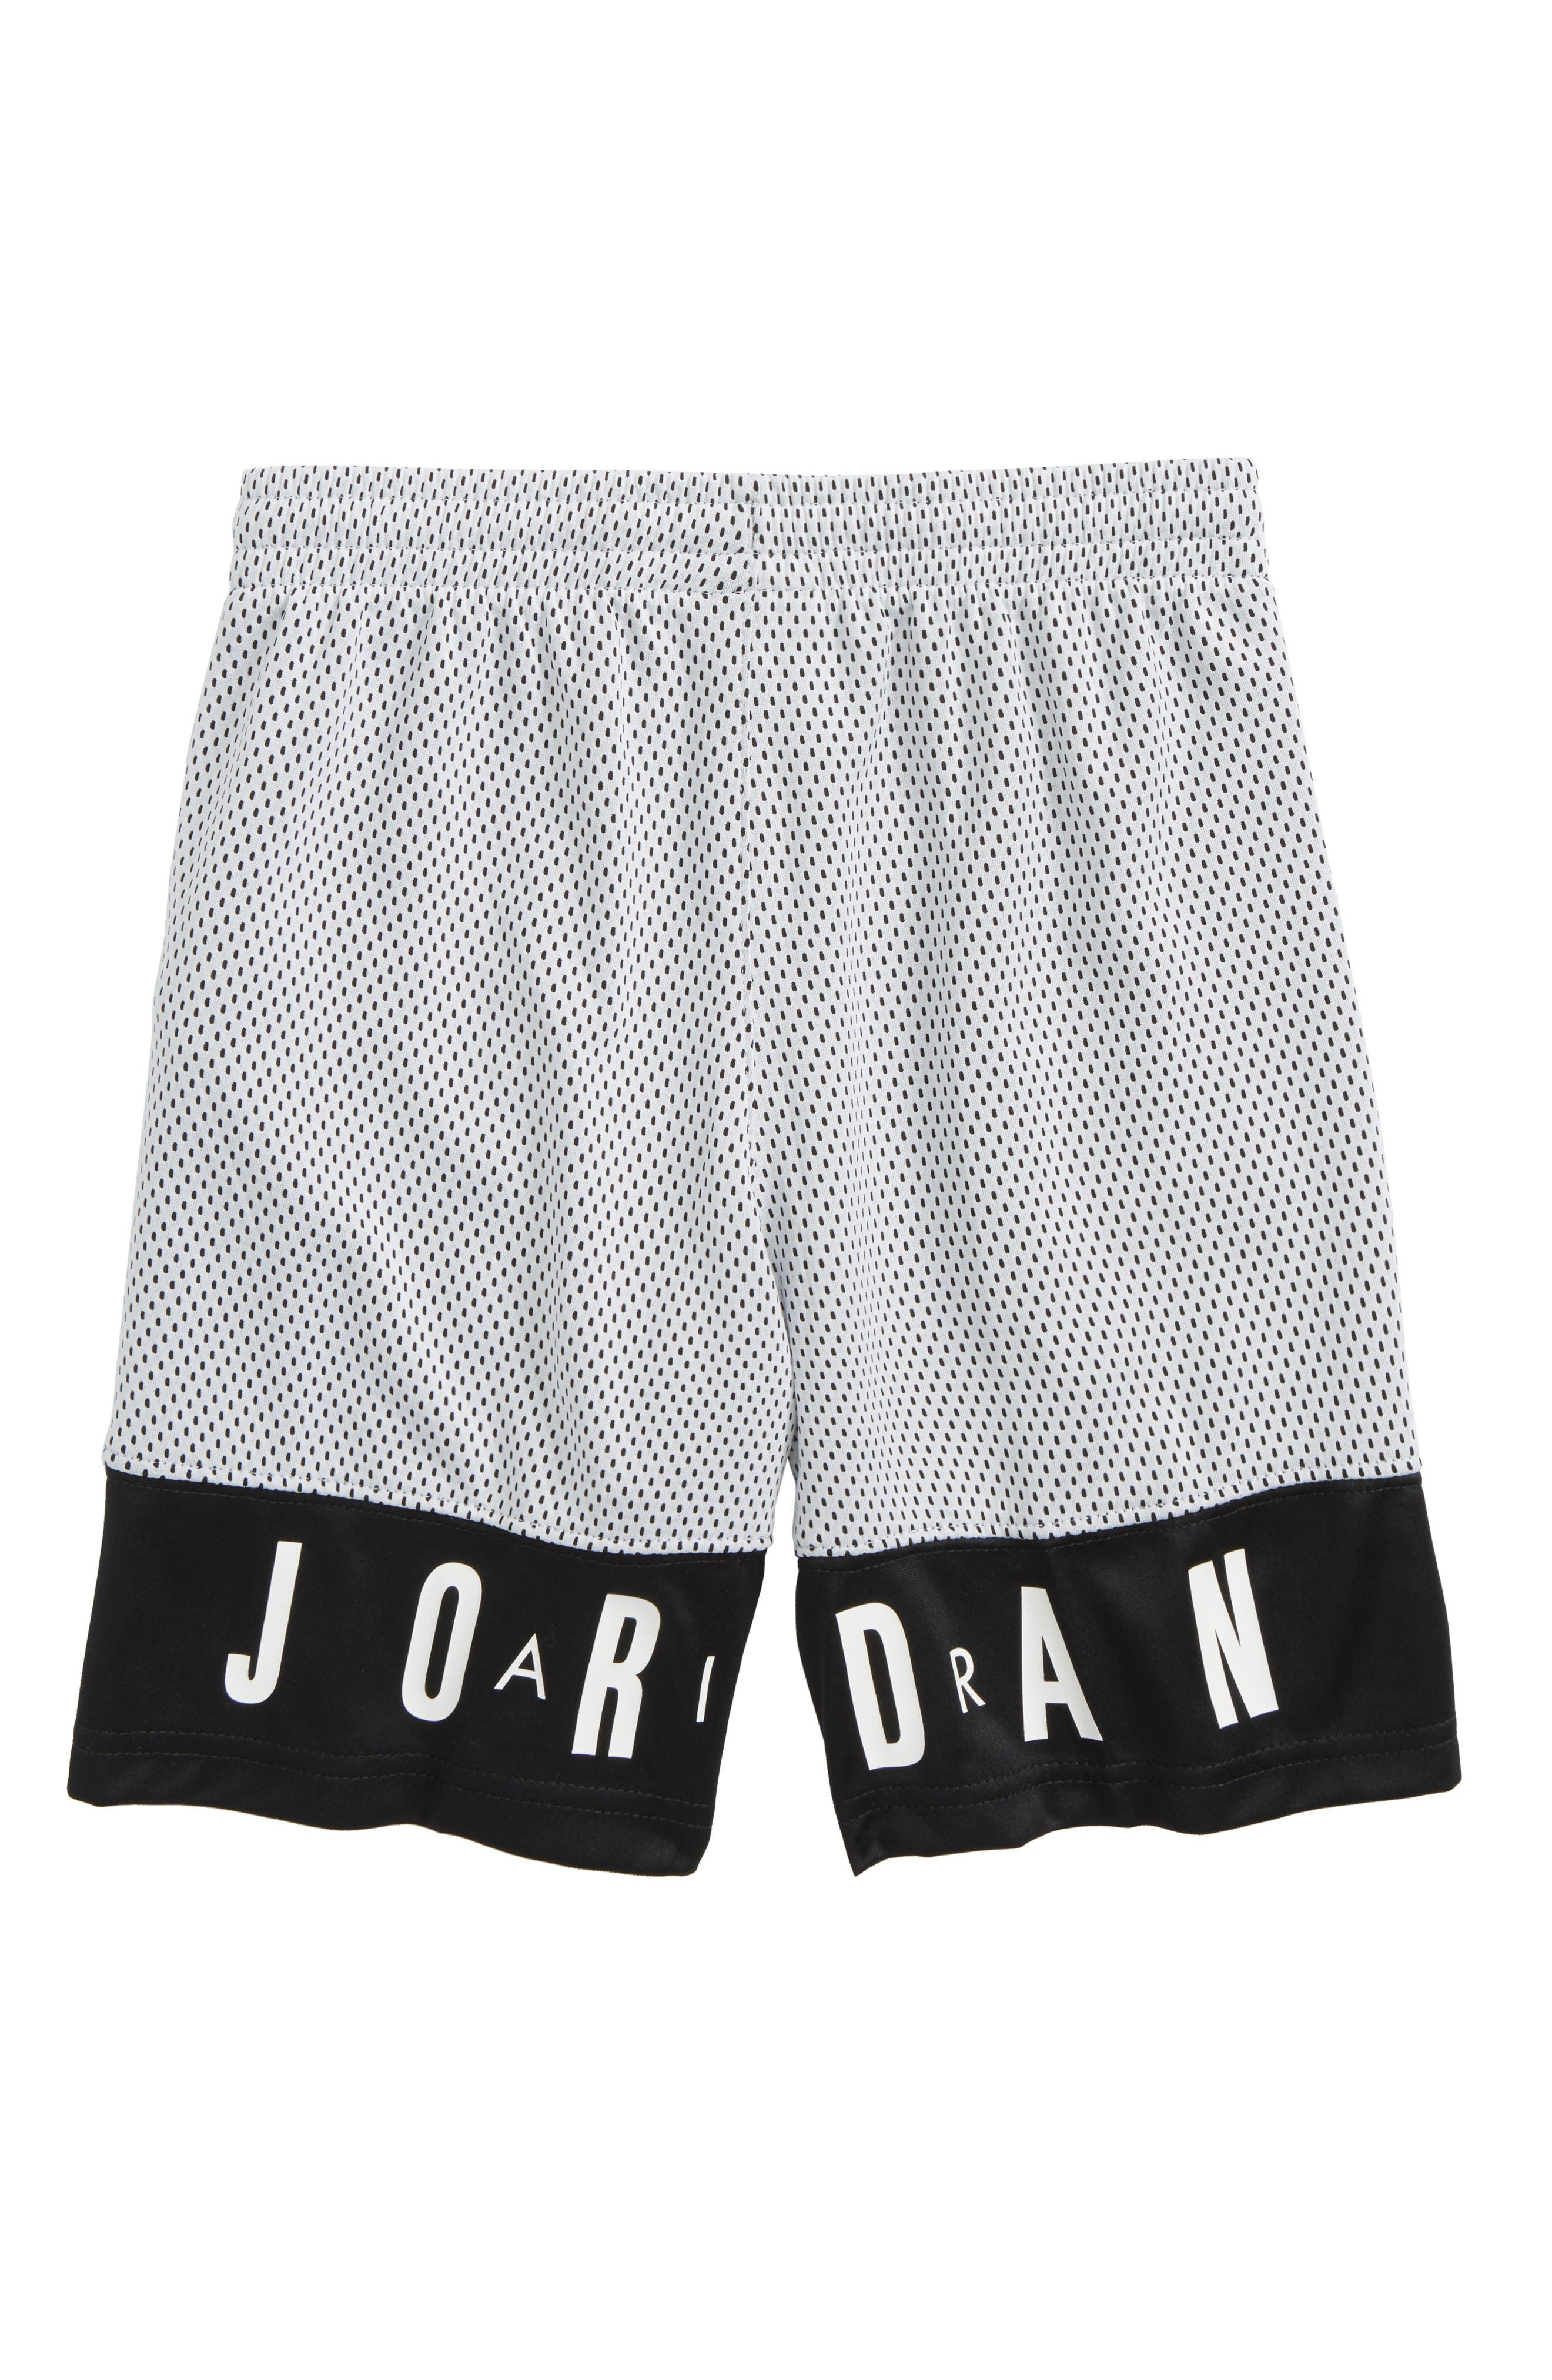 Jordan '90s Mesh Shorts,                             Alternate thumbnail 2, color,                             001